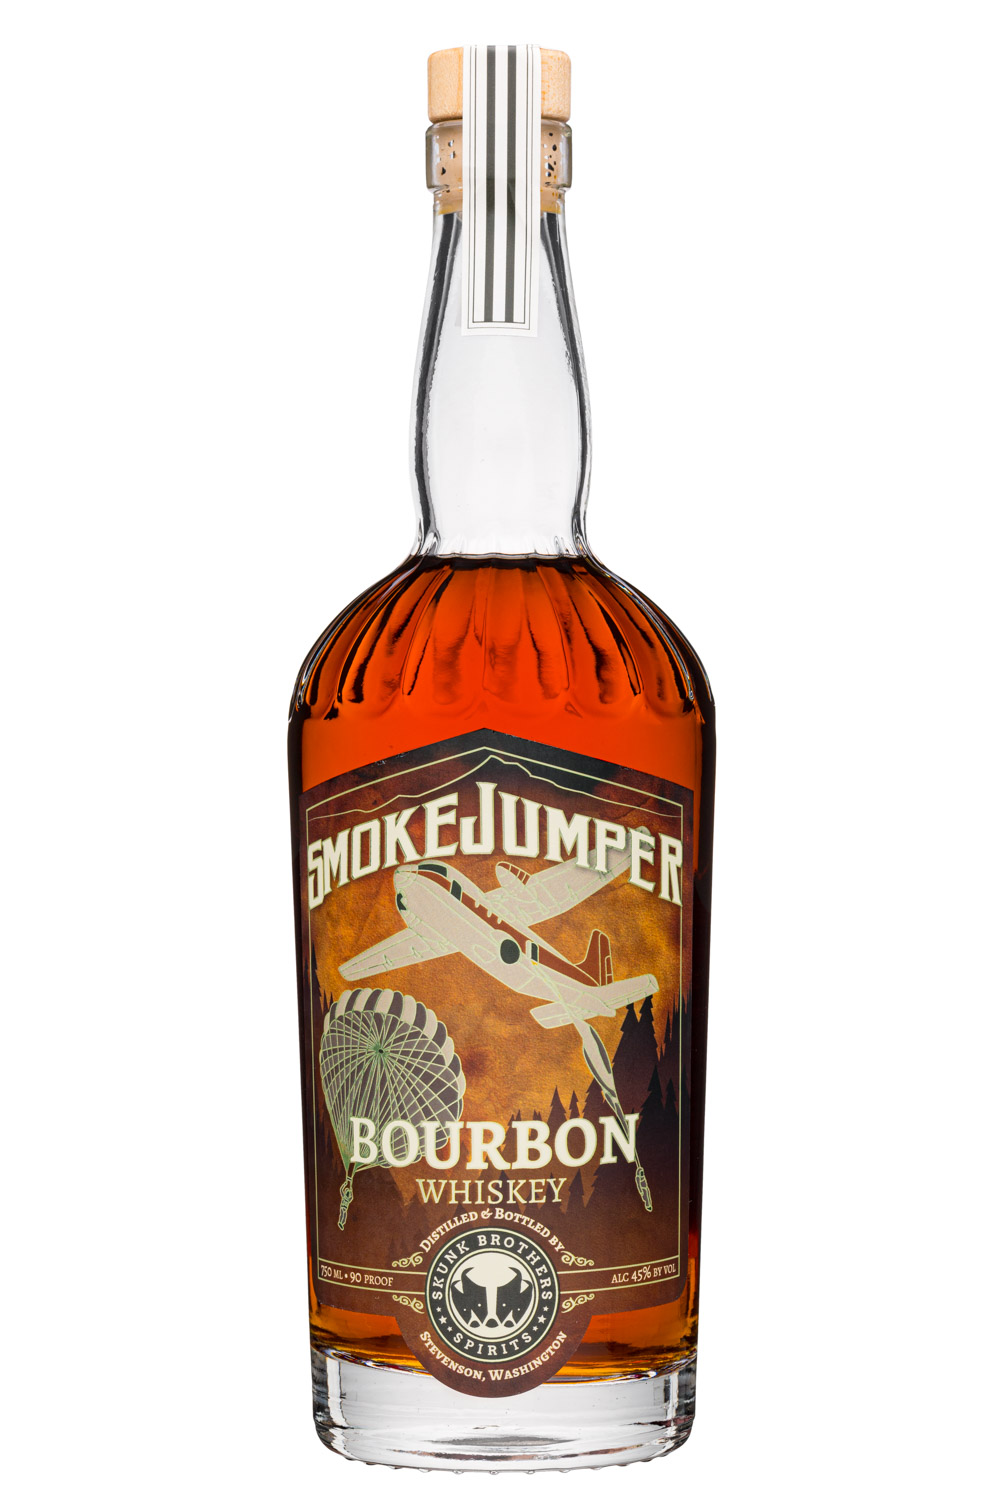 SmokeJumper Bourbon